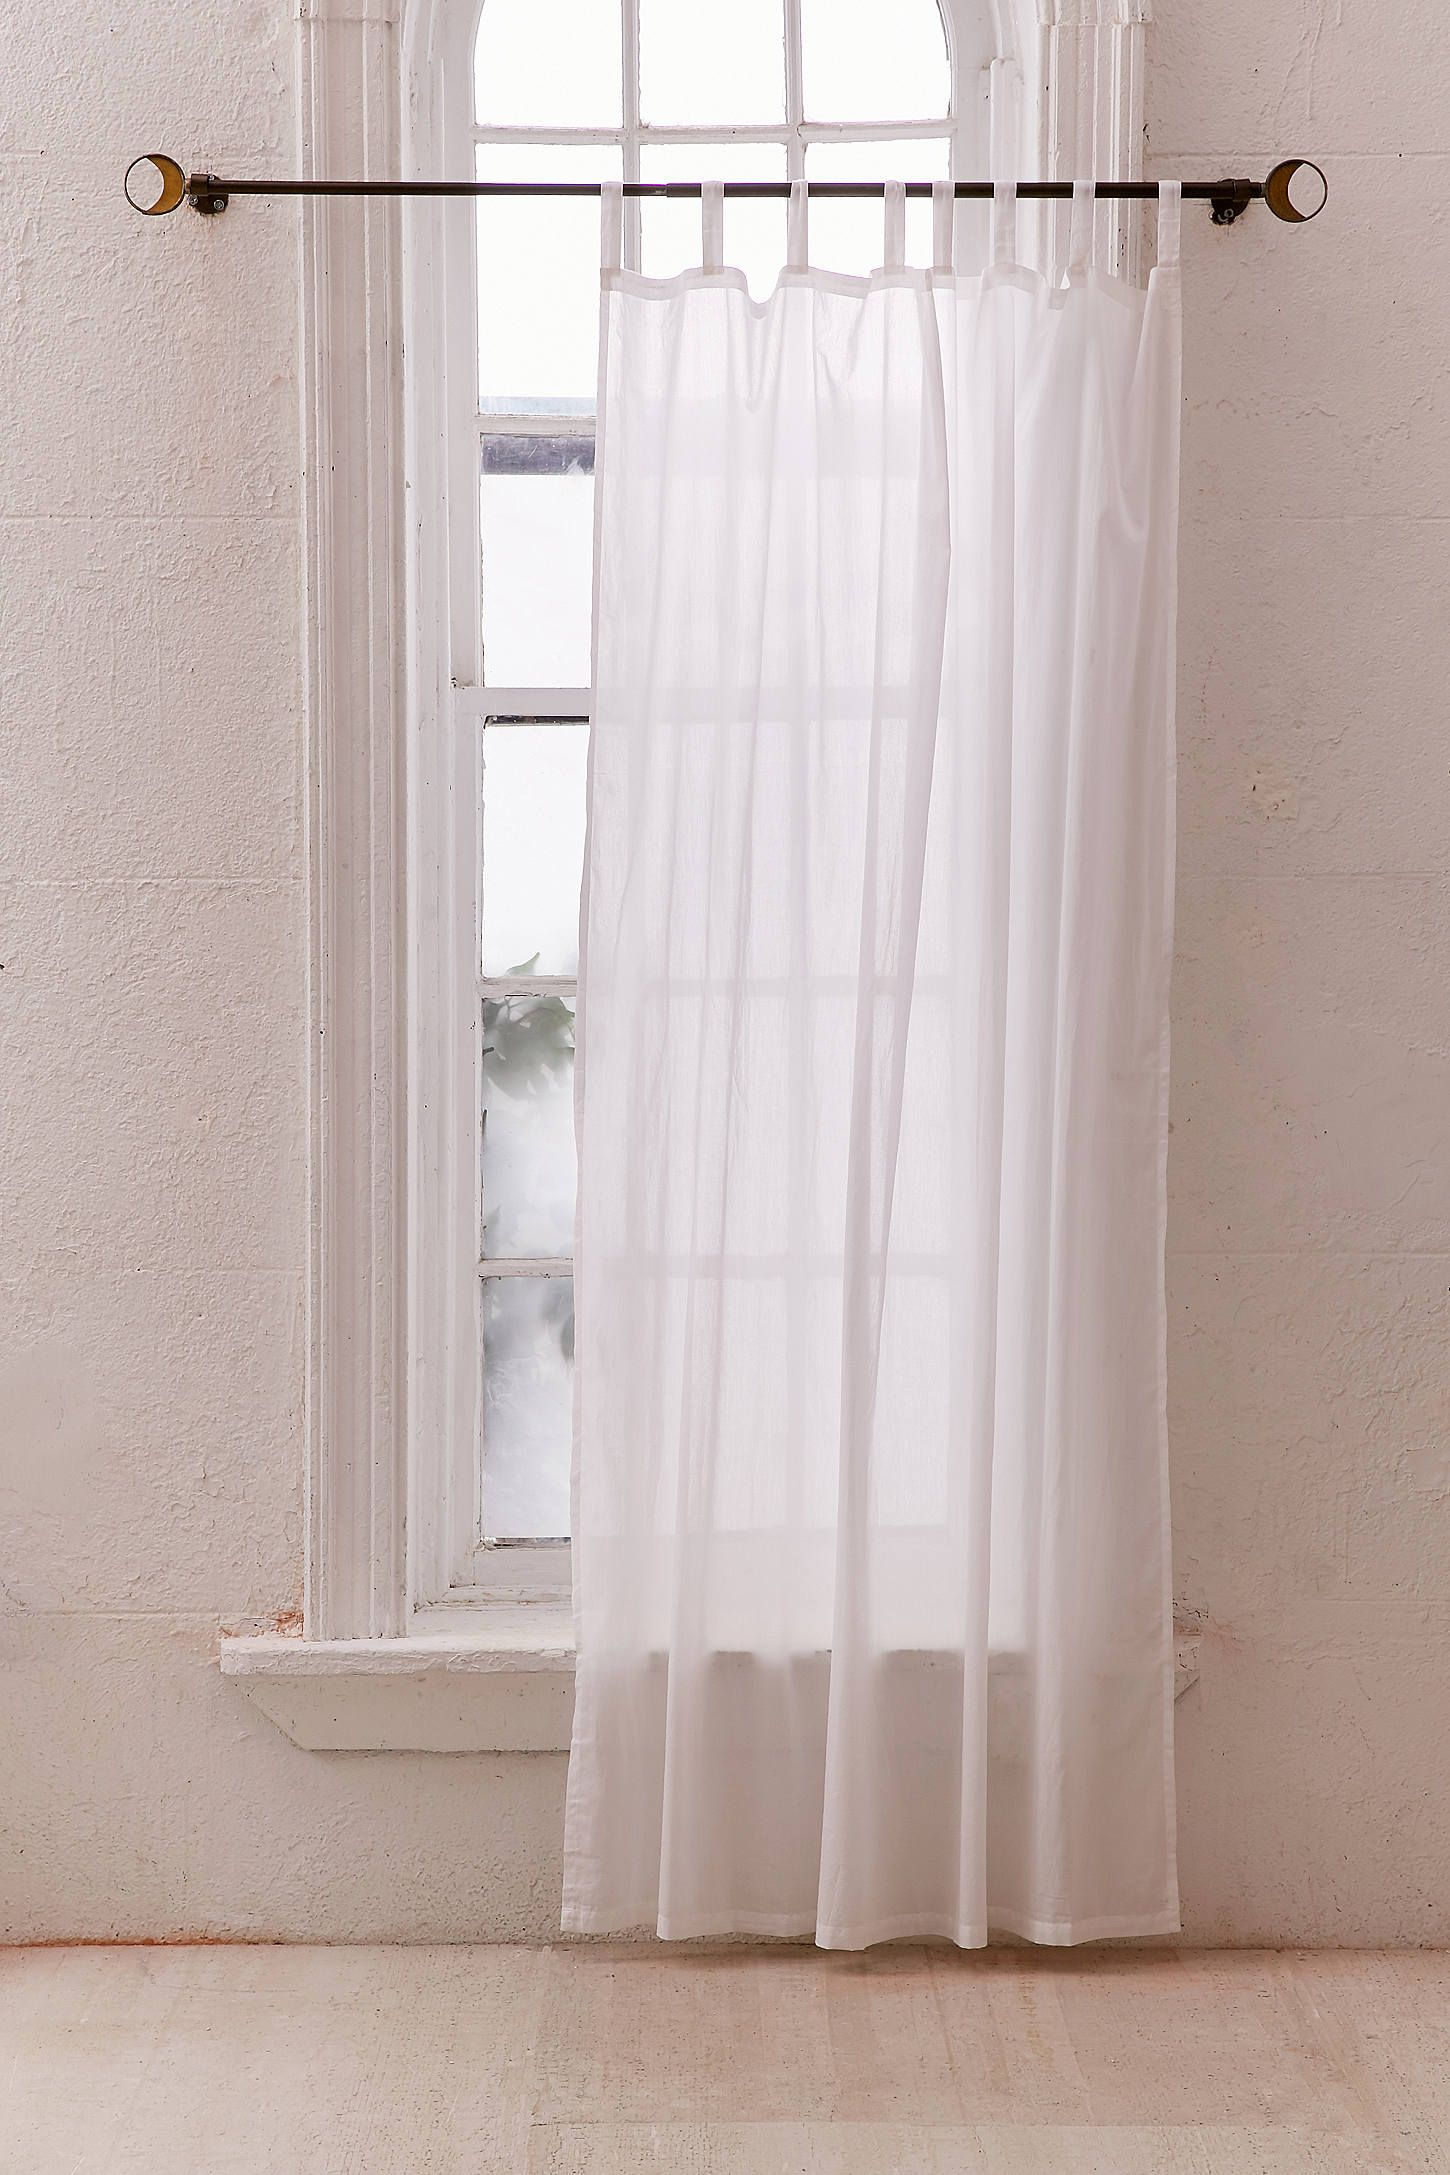 sheer curtains item for curtain home bedroom voile finished living in from room screening tulle window the panel stripe garden on fashion